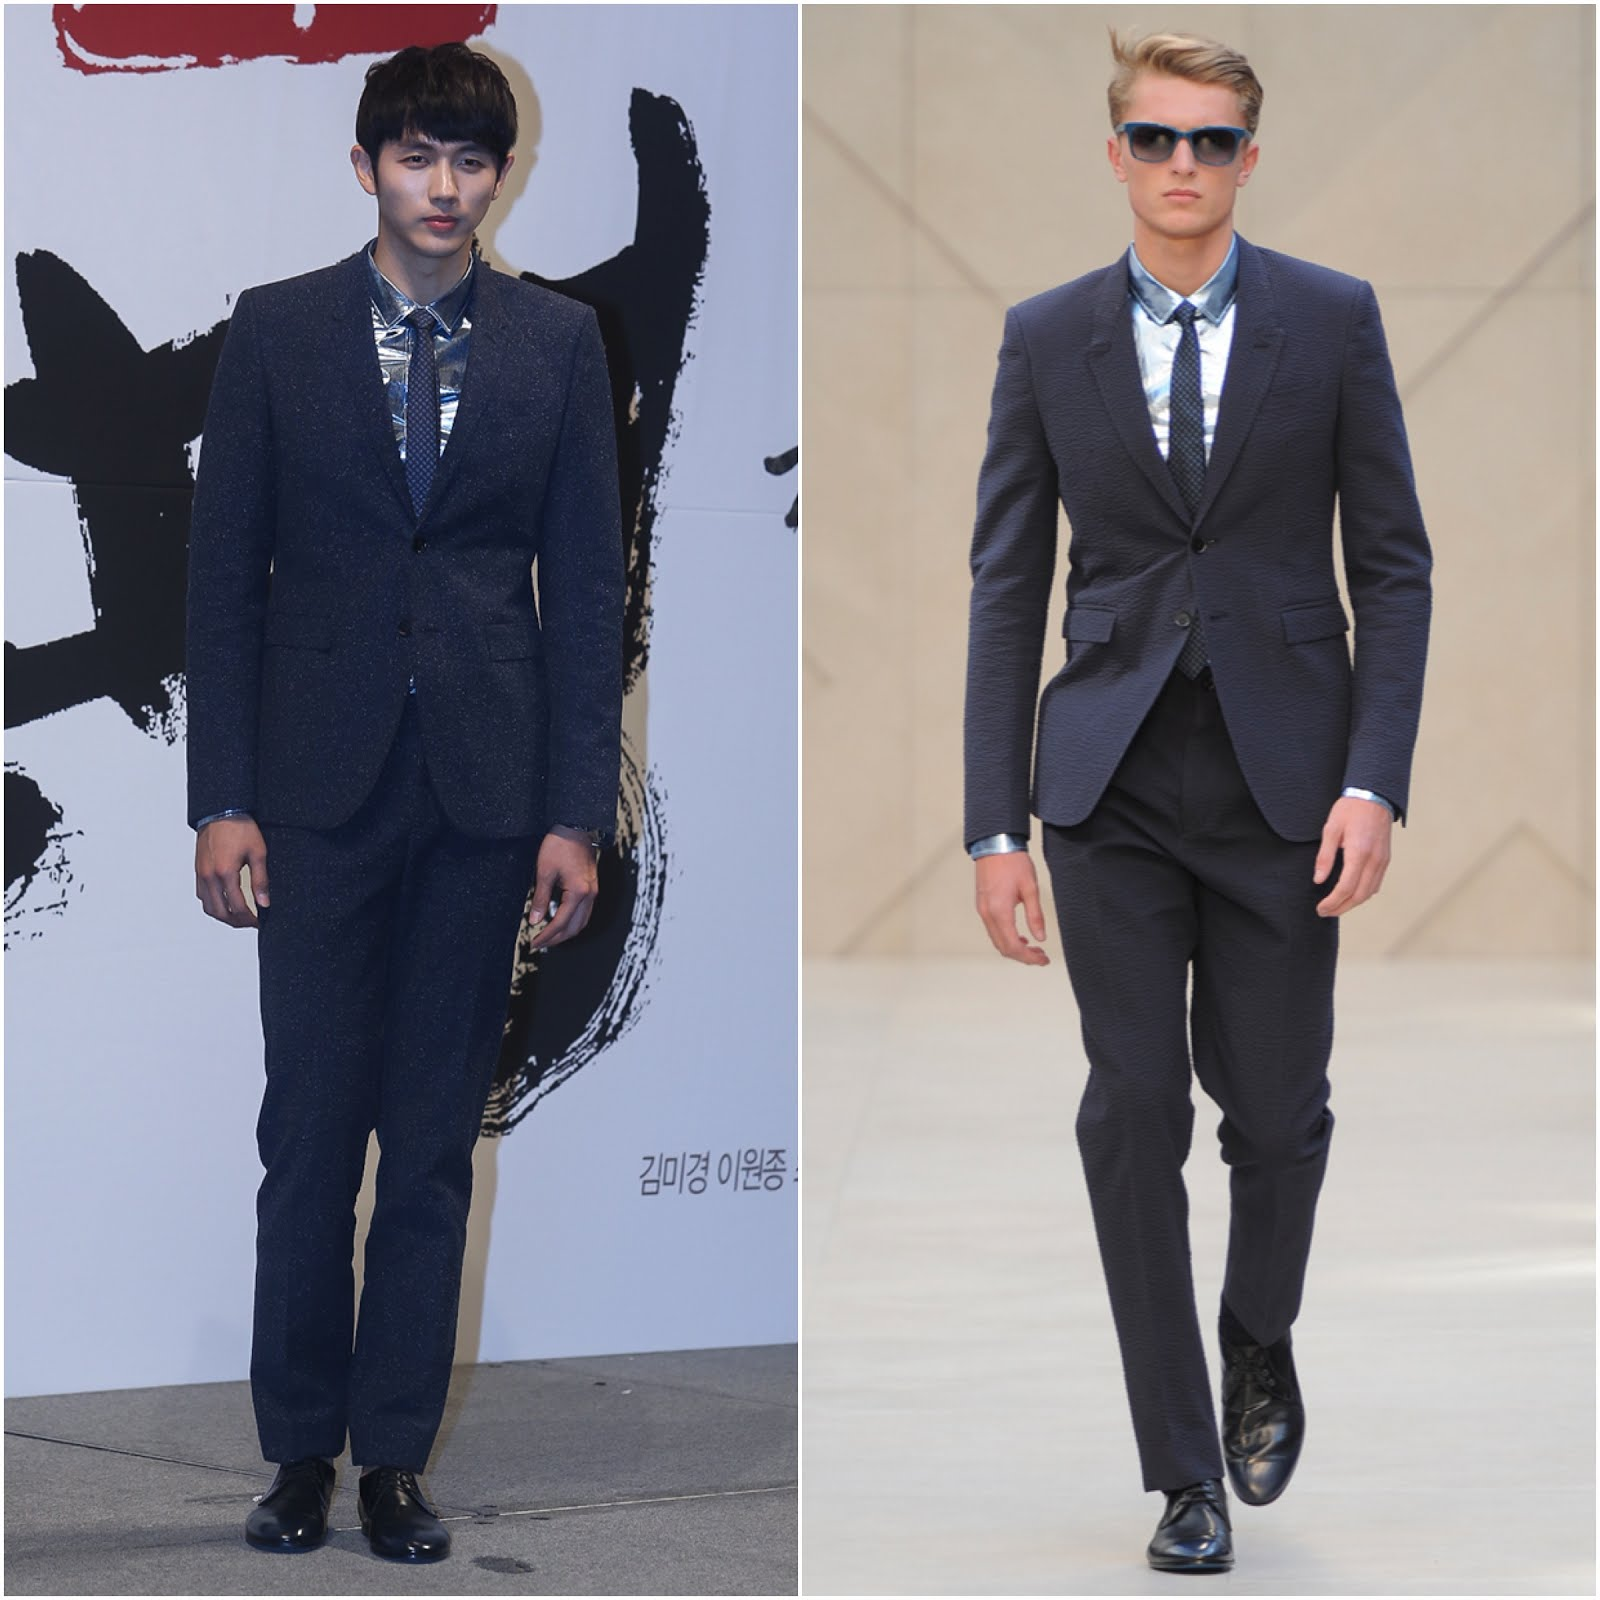 00O00 Menswear blog Im Seulong [任瑟雍] in Burberry Prorsum menswear -